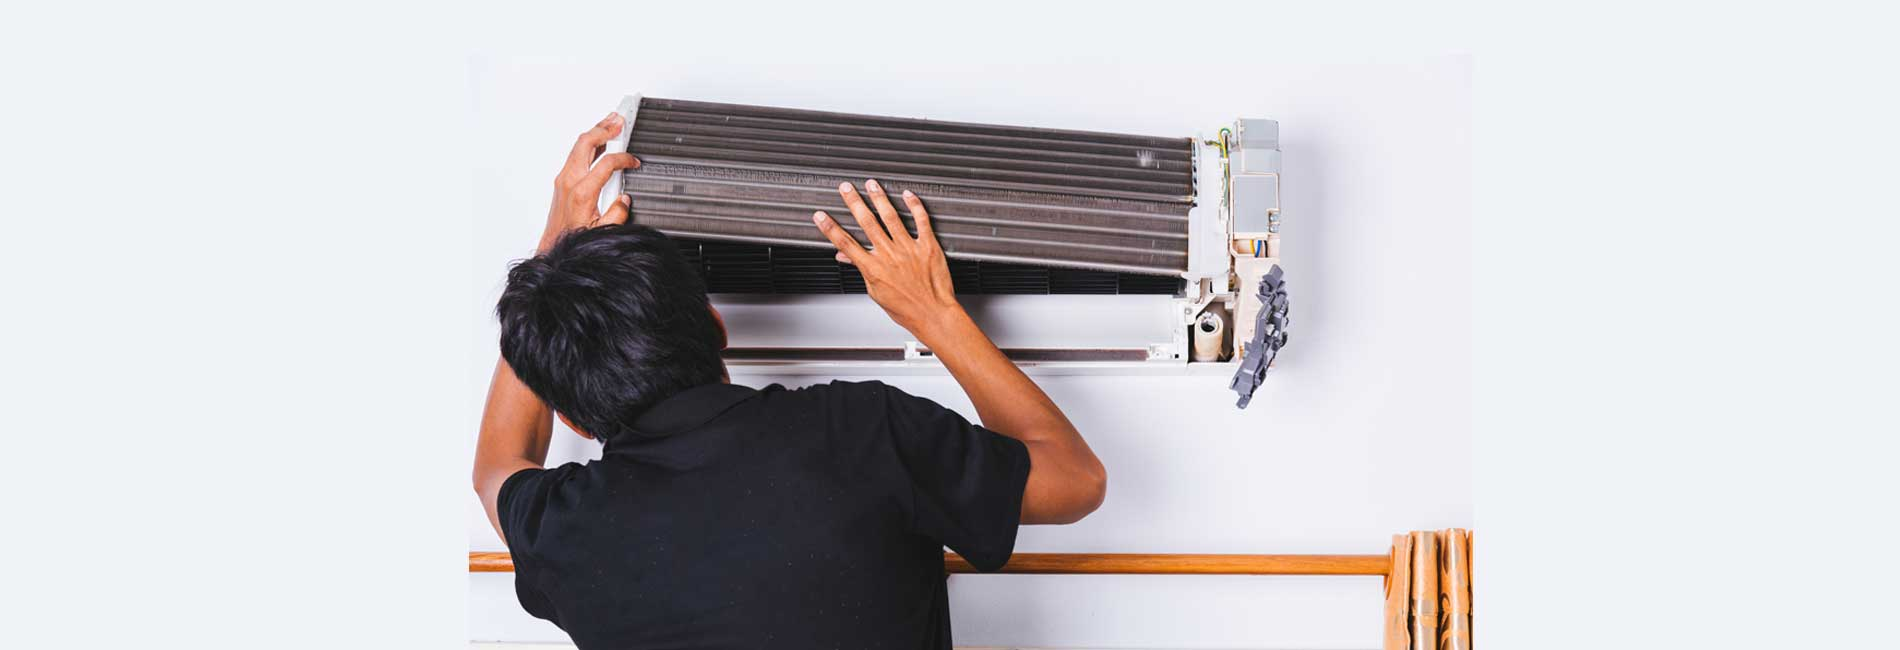 Air Condition Repair in Puzhuthivakkam